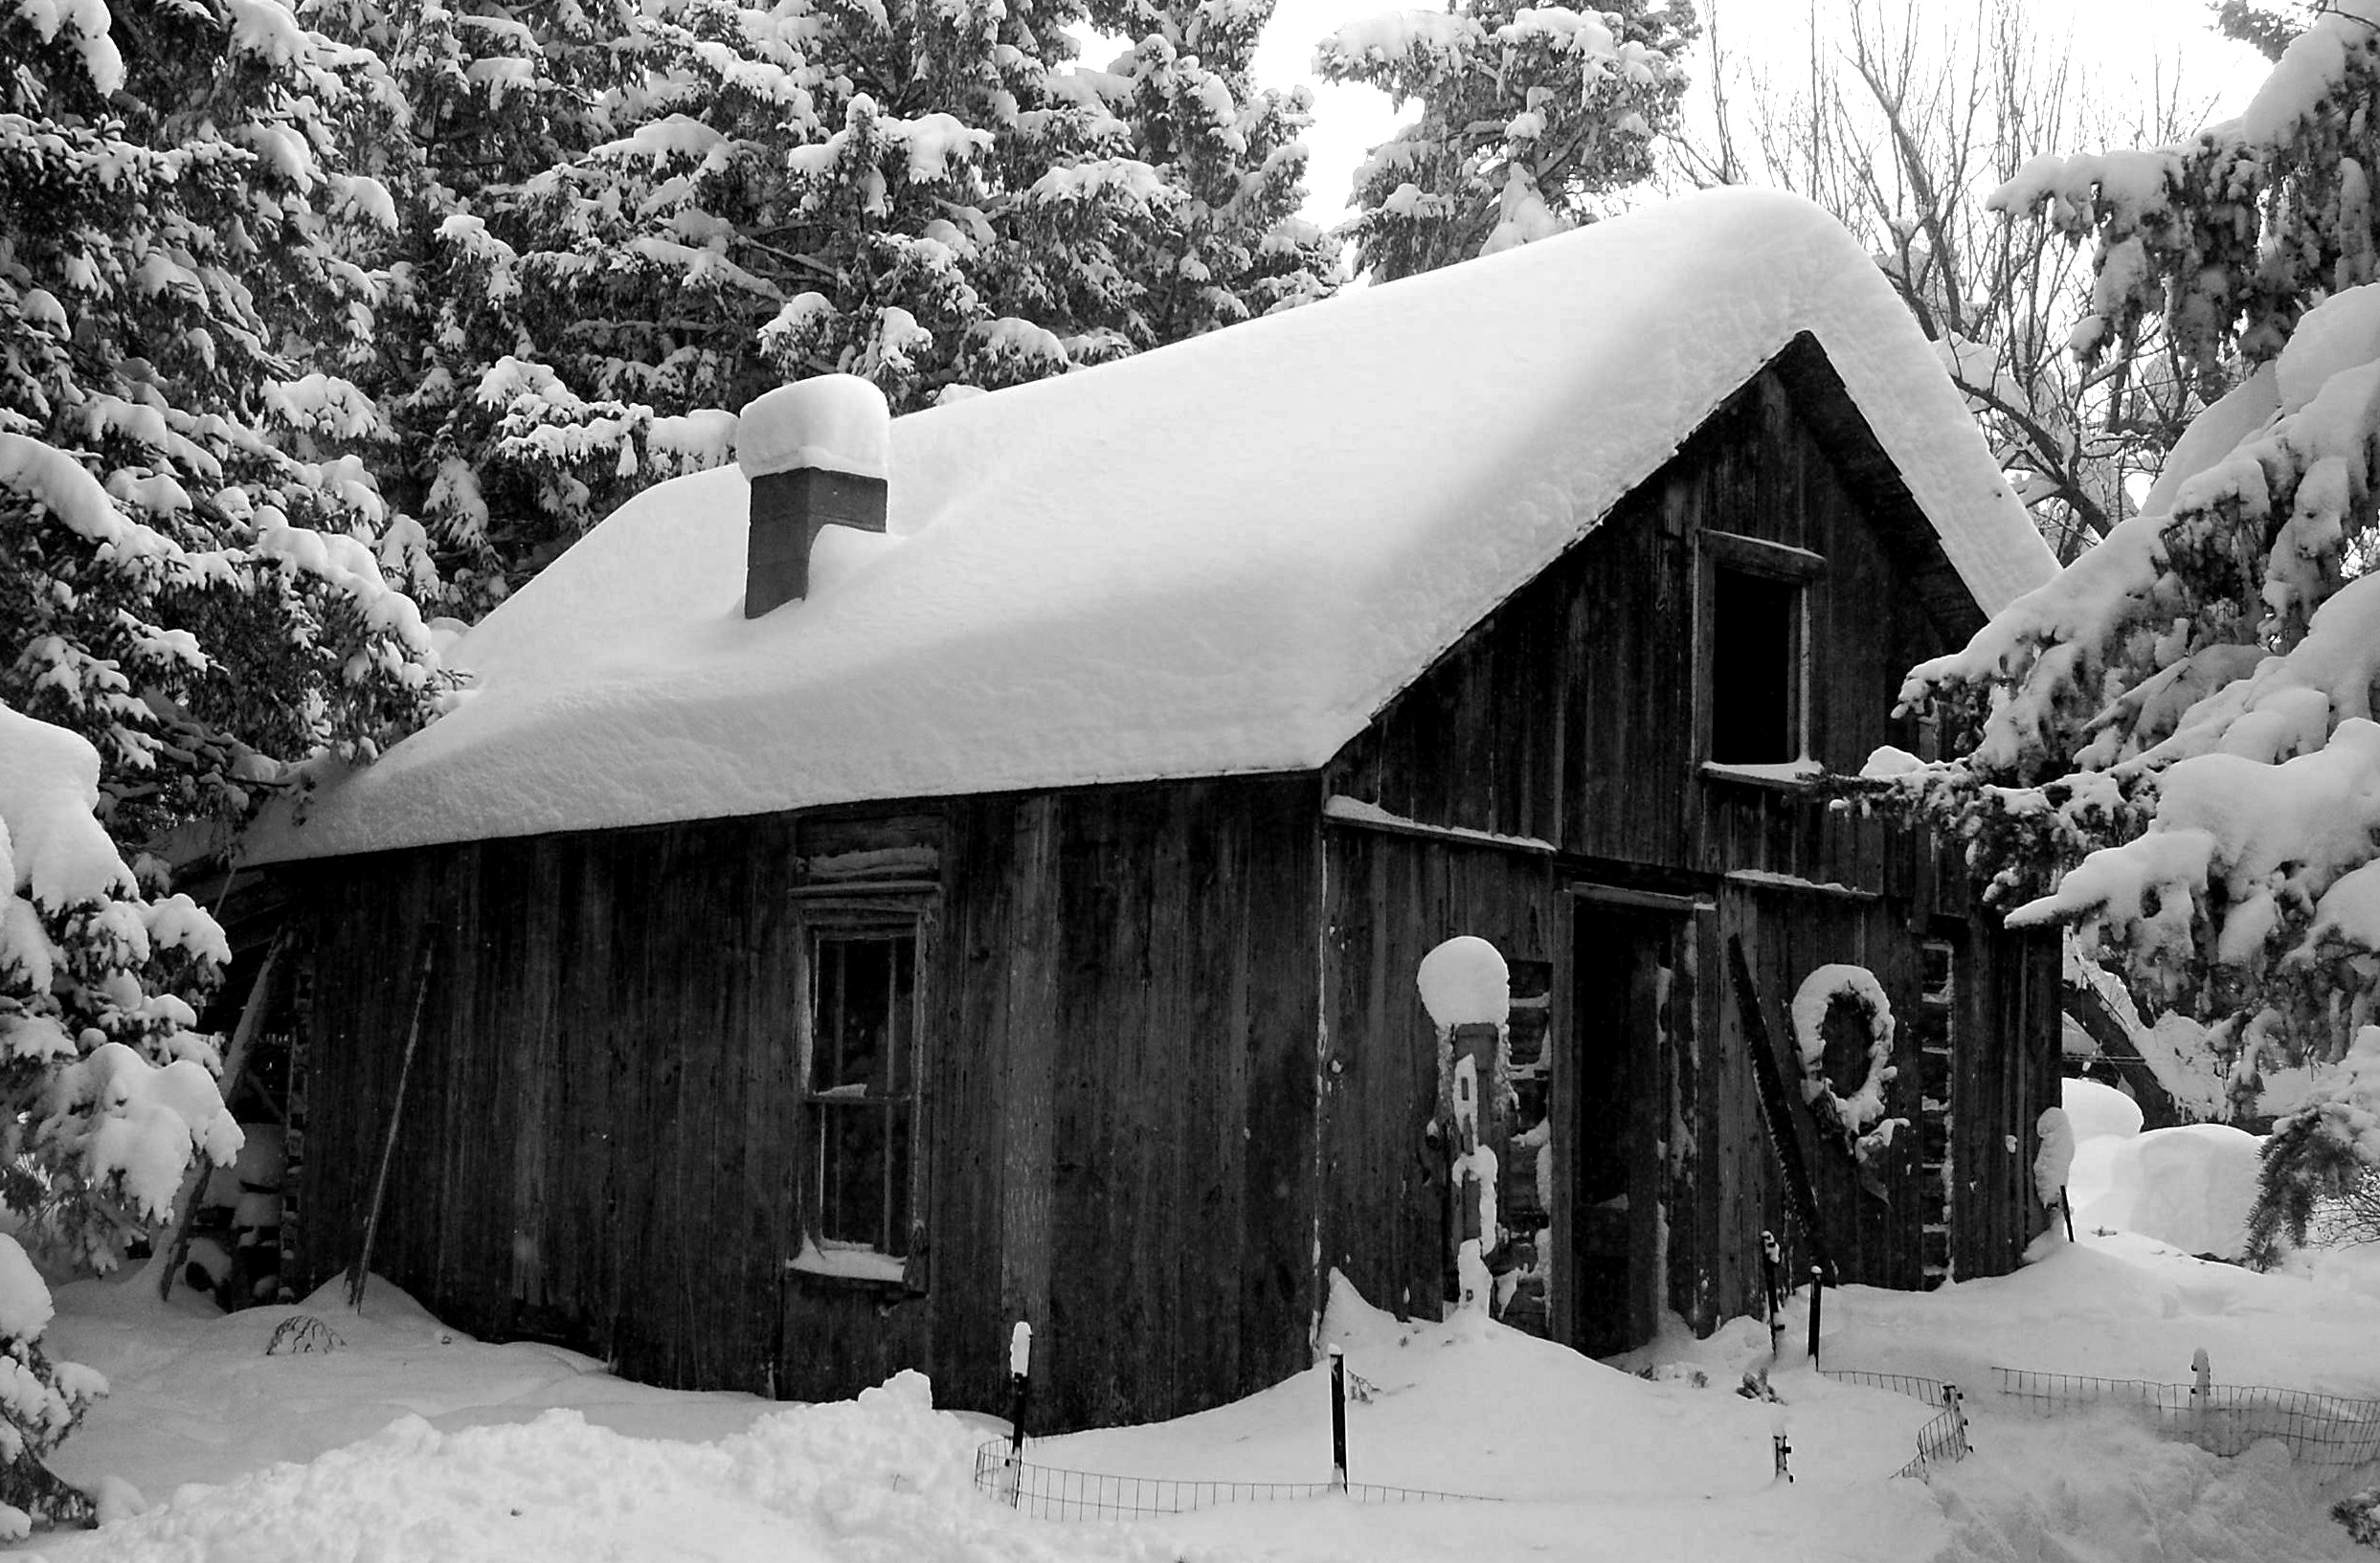 Snow covered cabin, processed Black and White.